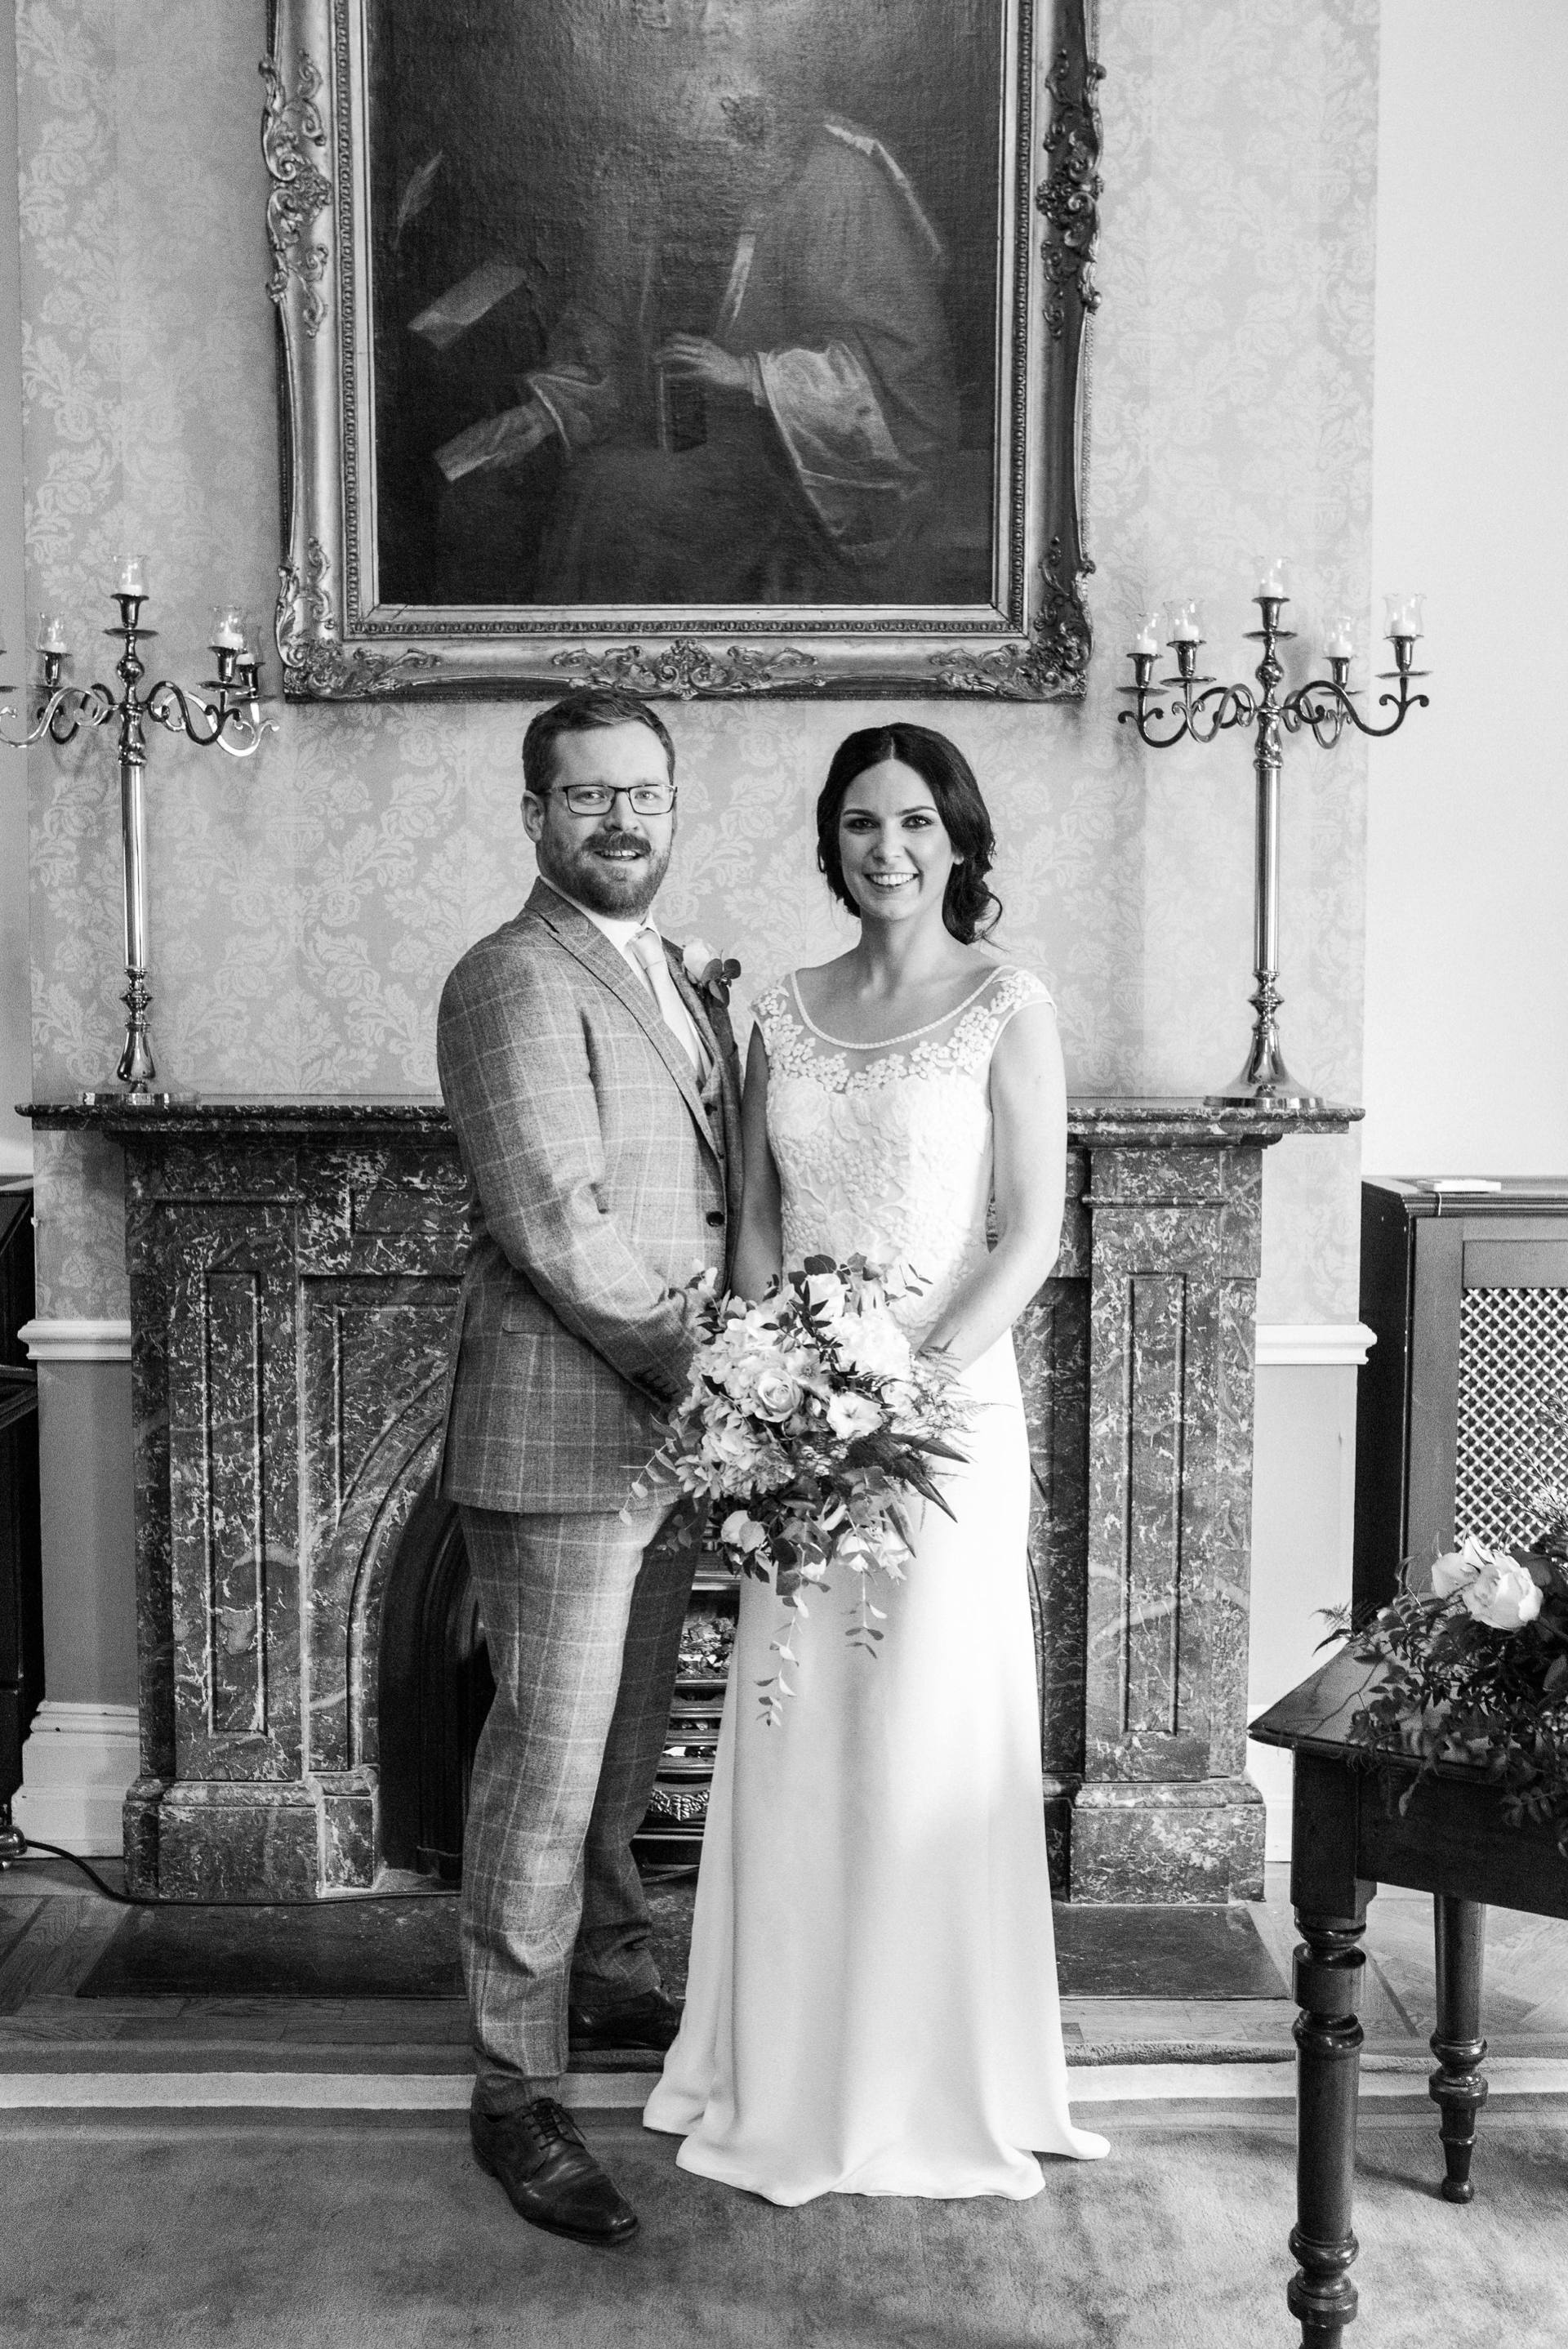 Portrait of Bride and groom in front of mantlepiece